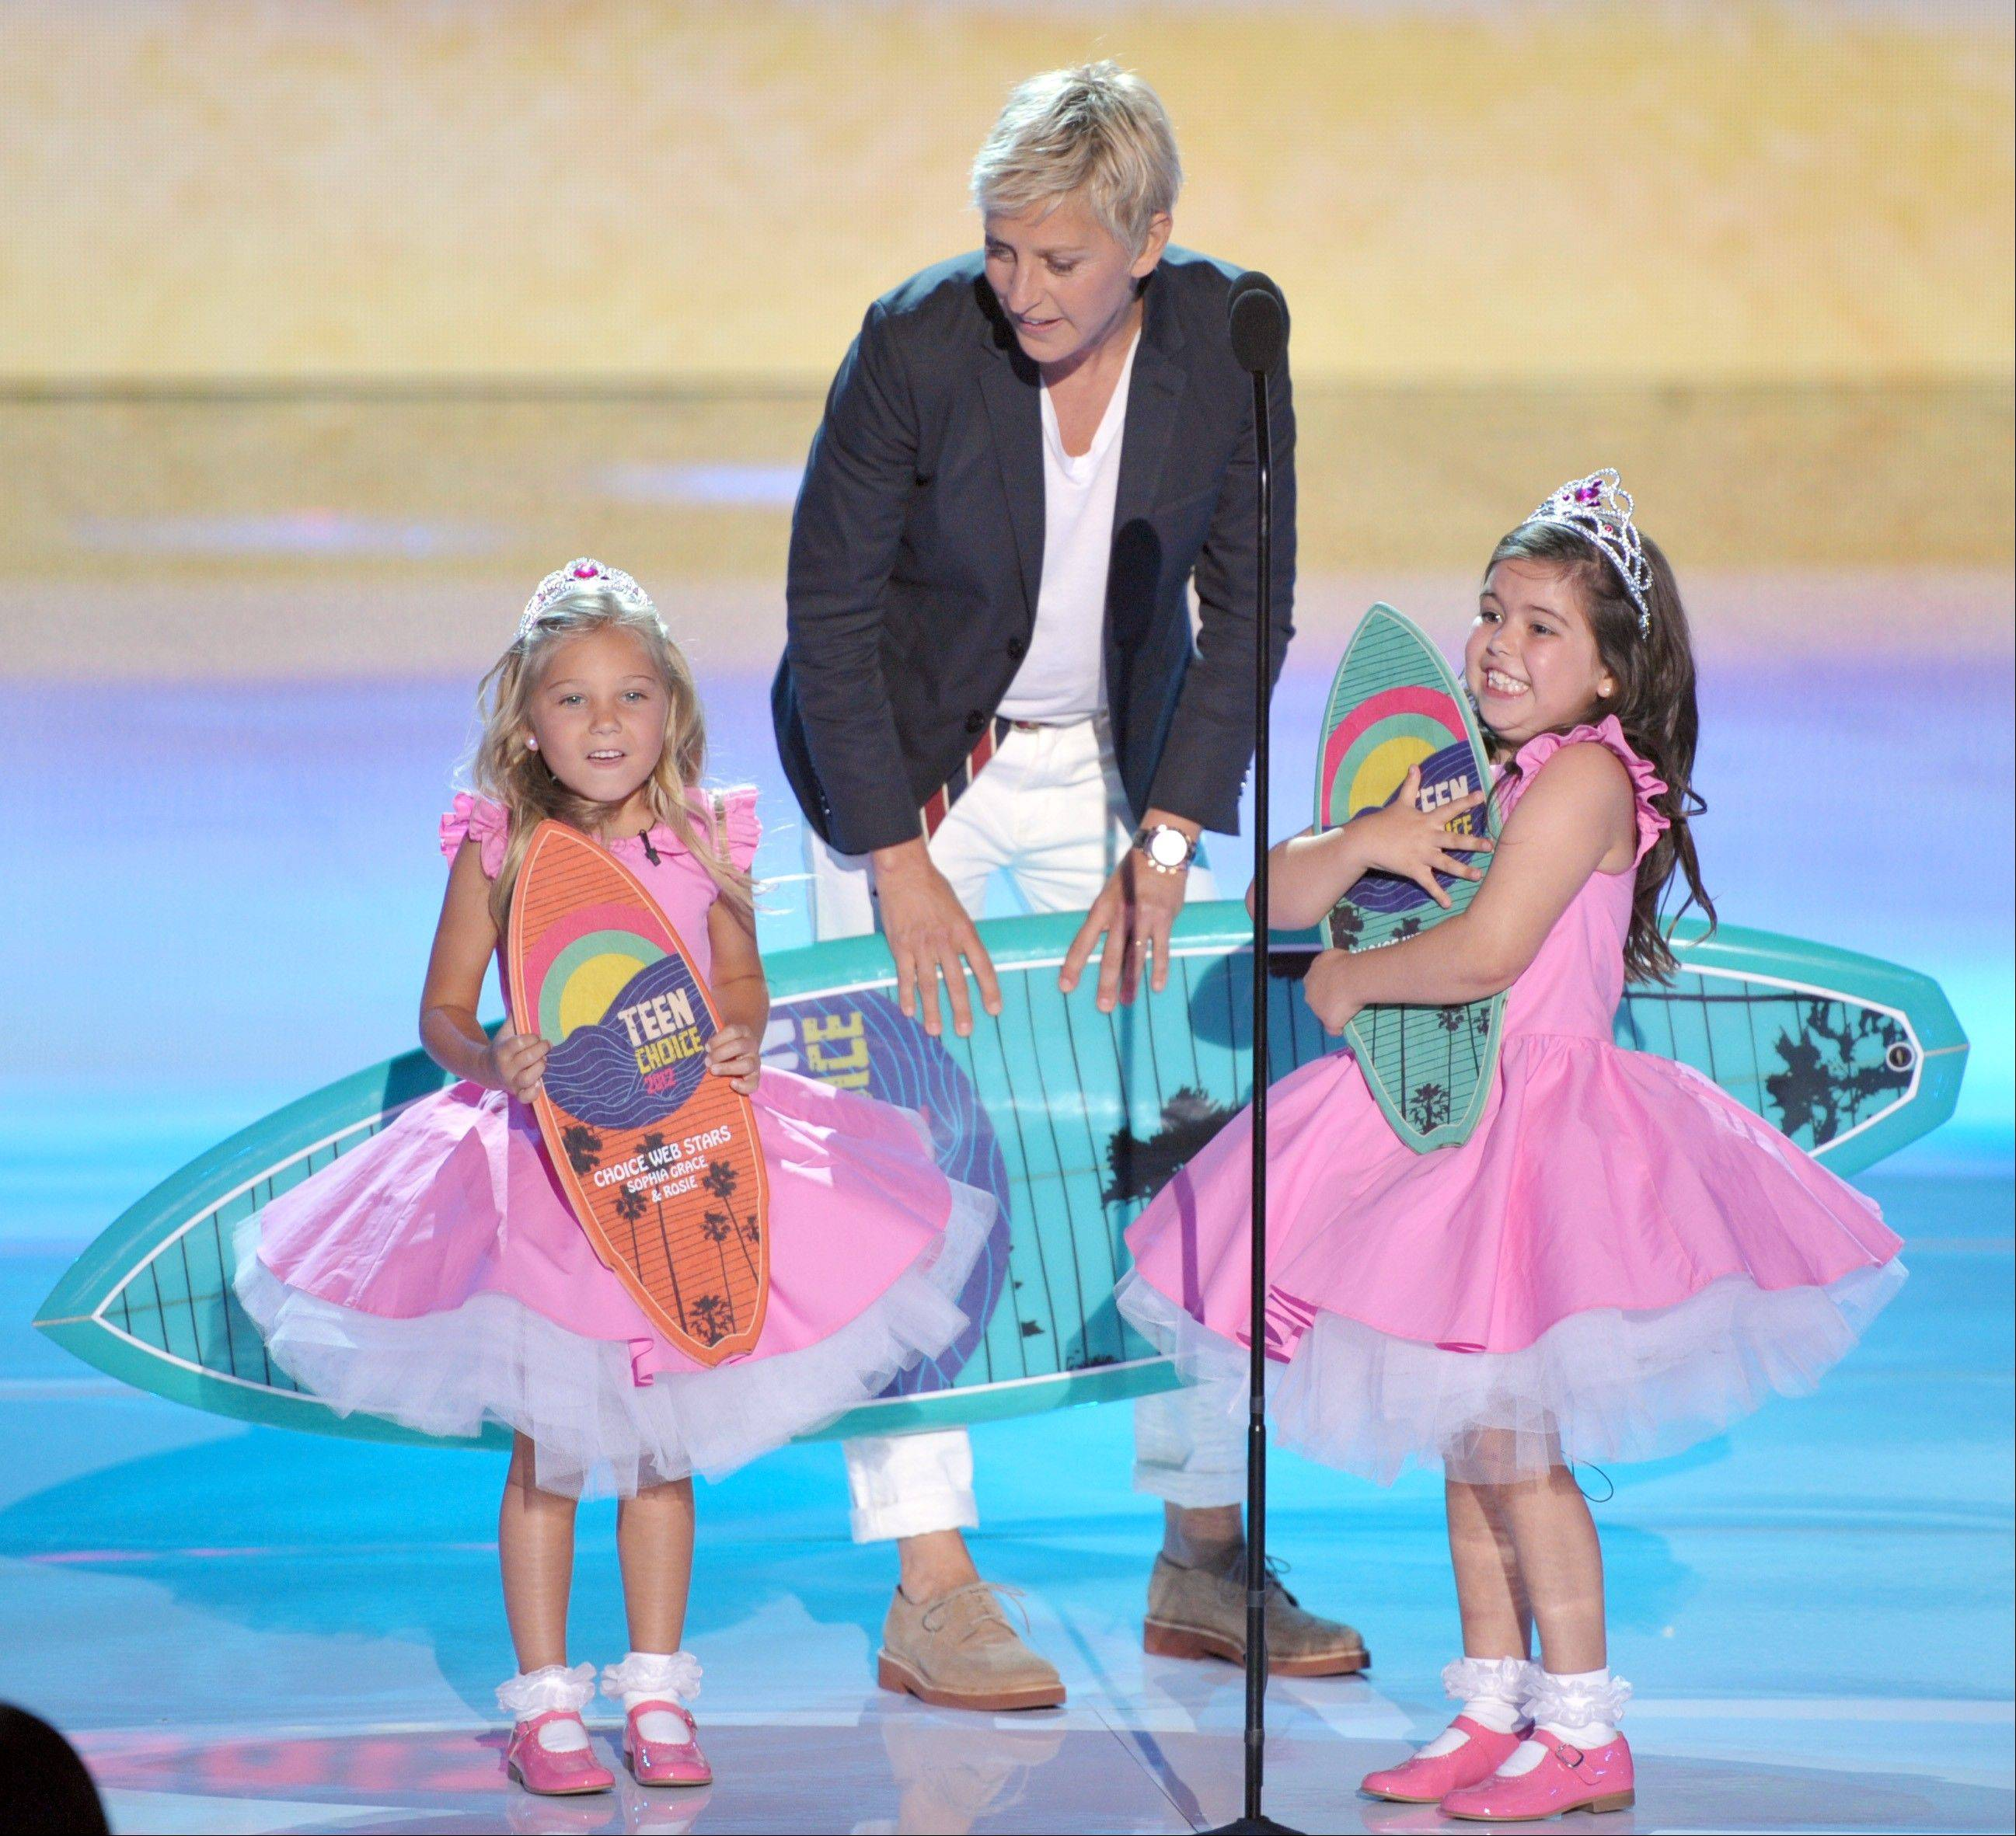 Ellen DeGeneres, center, accepts the award for choice comedian onstage with Rosie Mcclelland, left, and Sophia Grace Brownlee at the Teen Choice Awards on Sunday in Universal City, Calif.